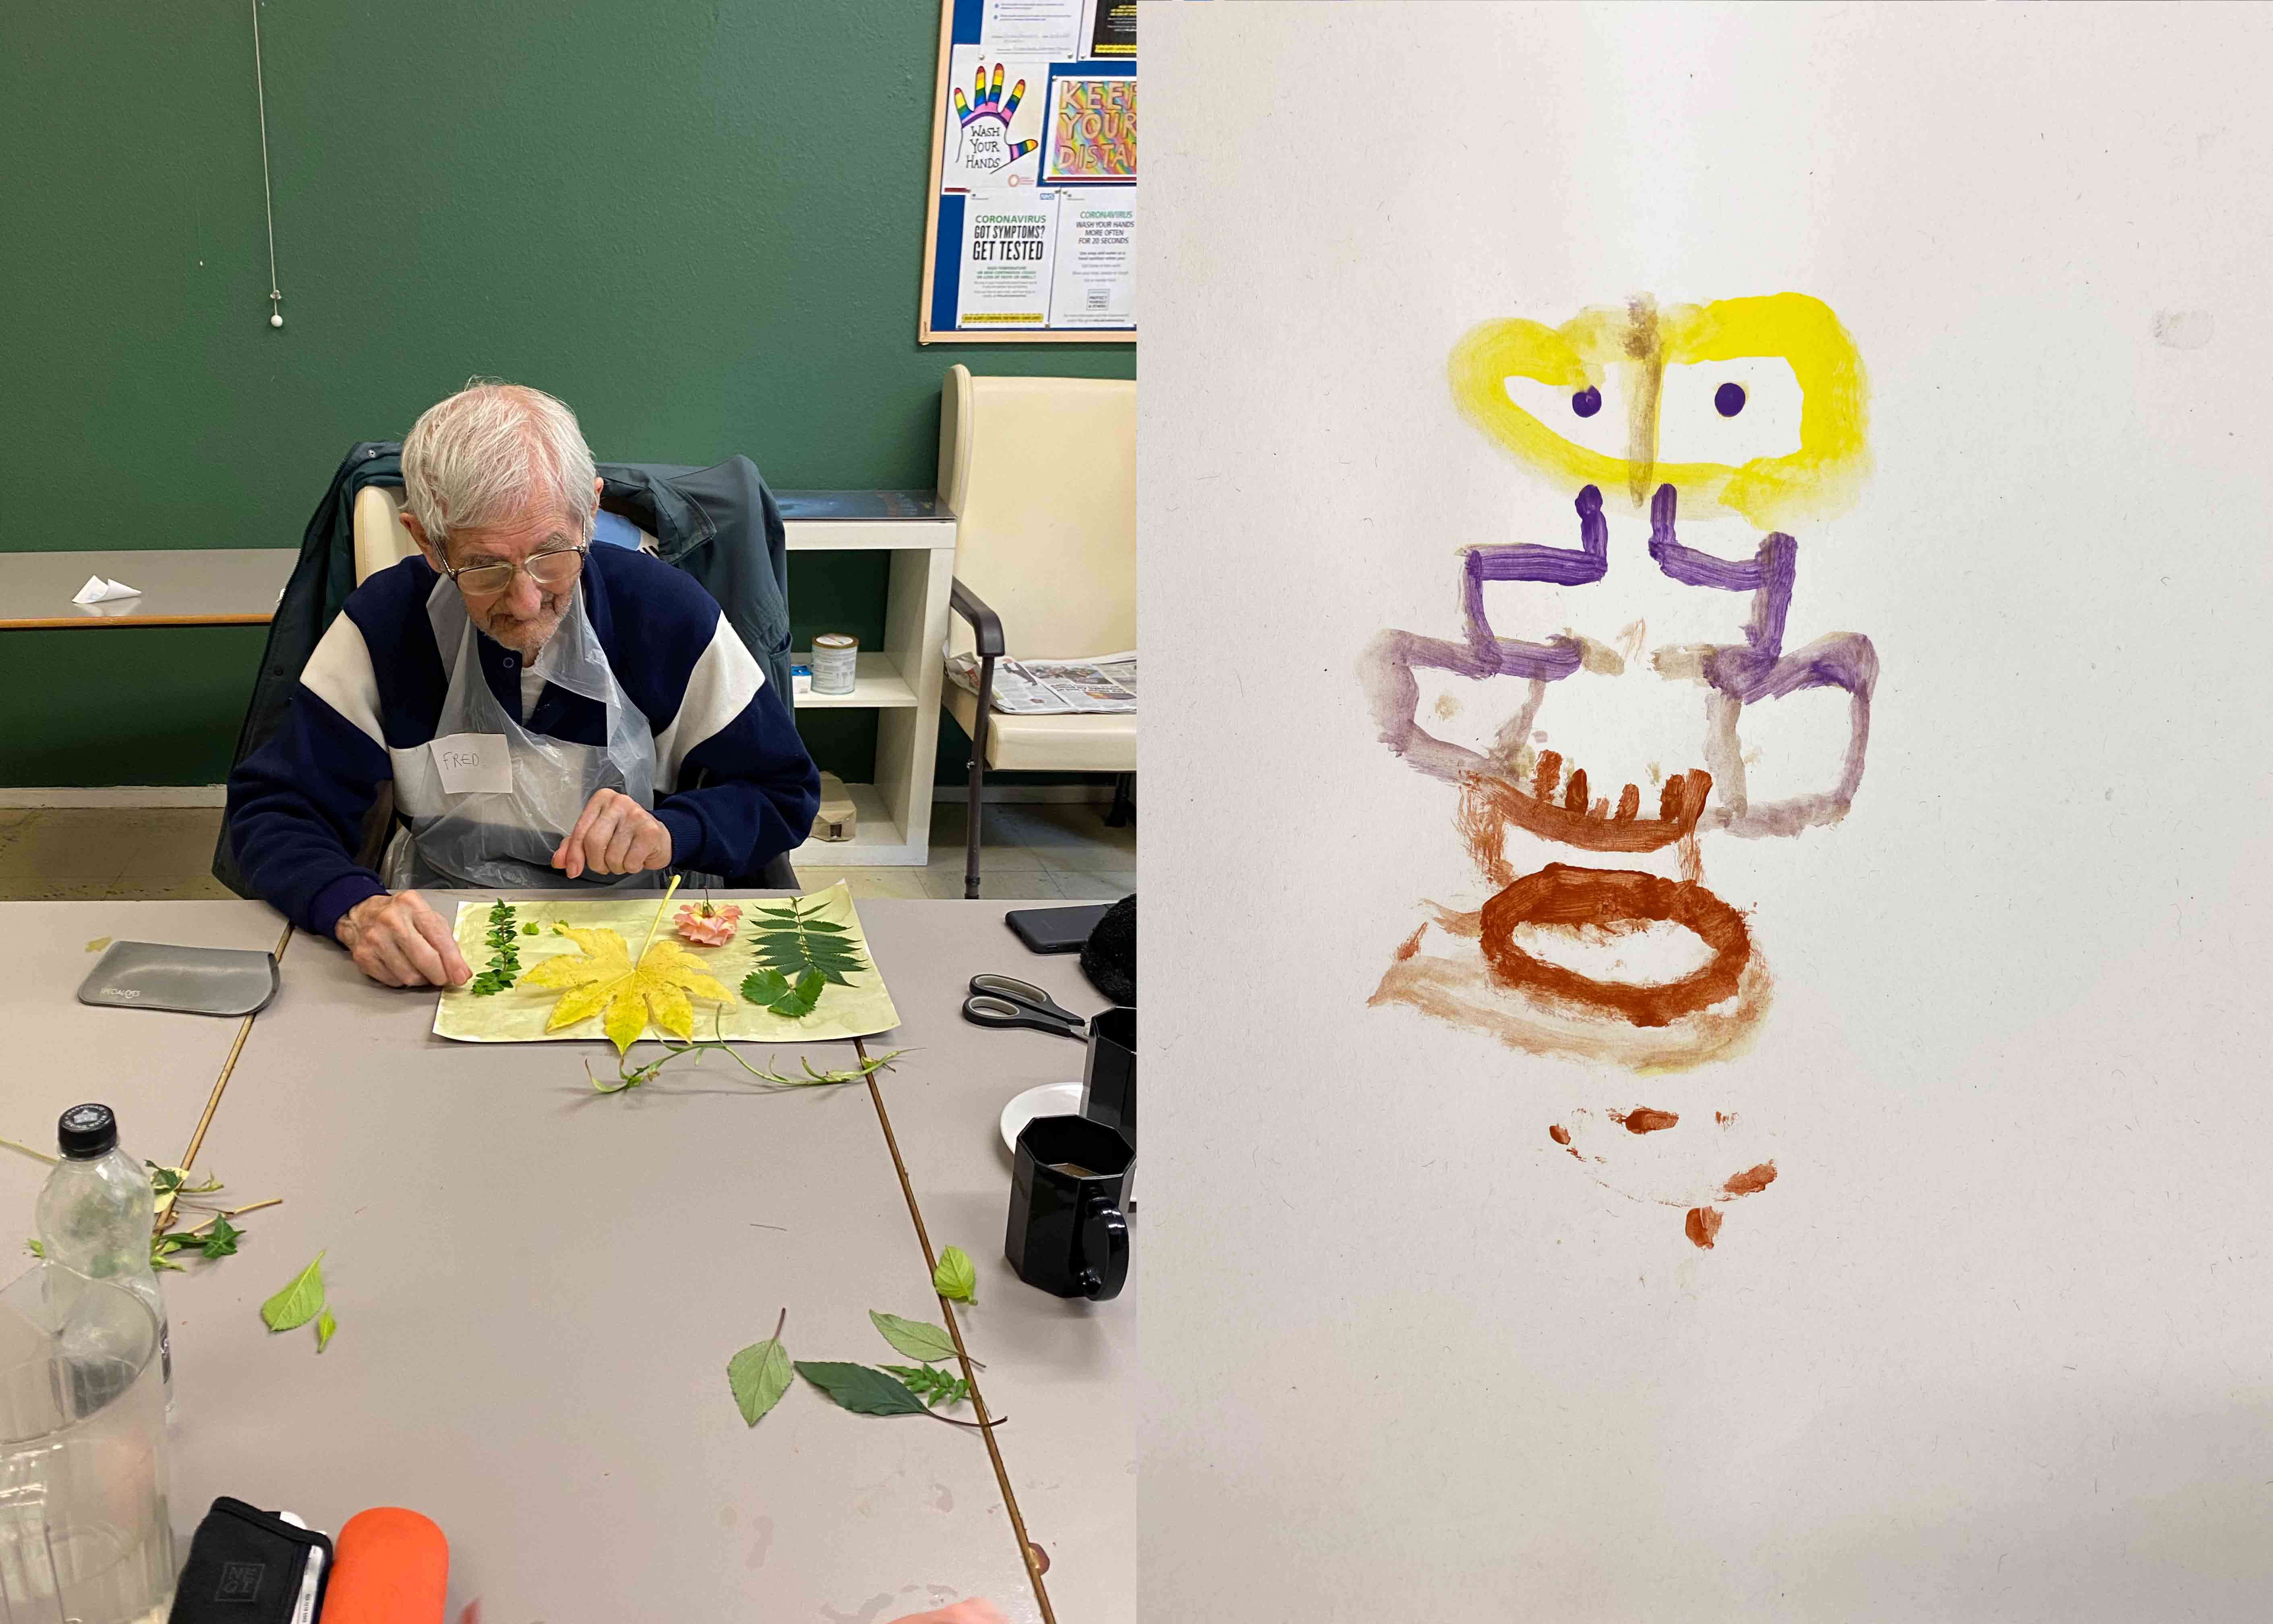 Man creating art with leaves and a drawing of a face